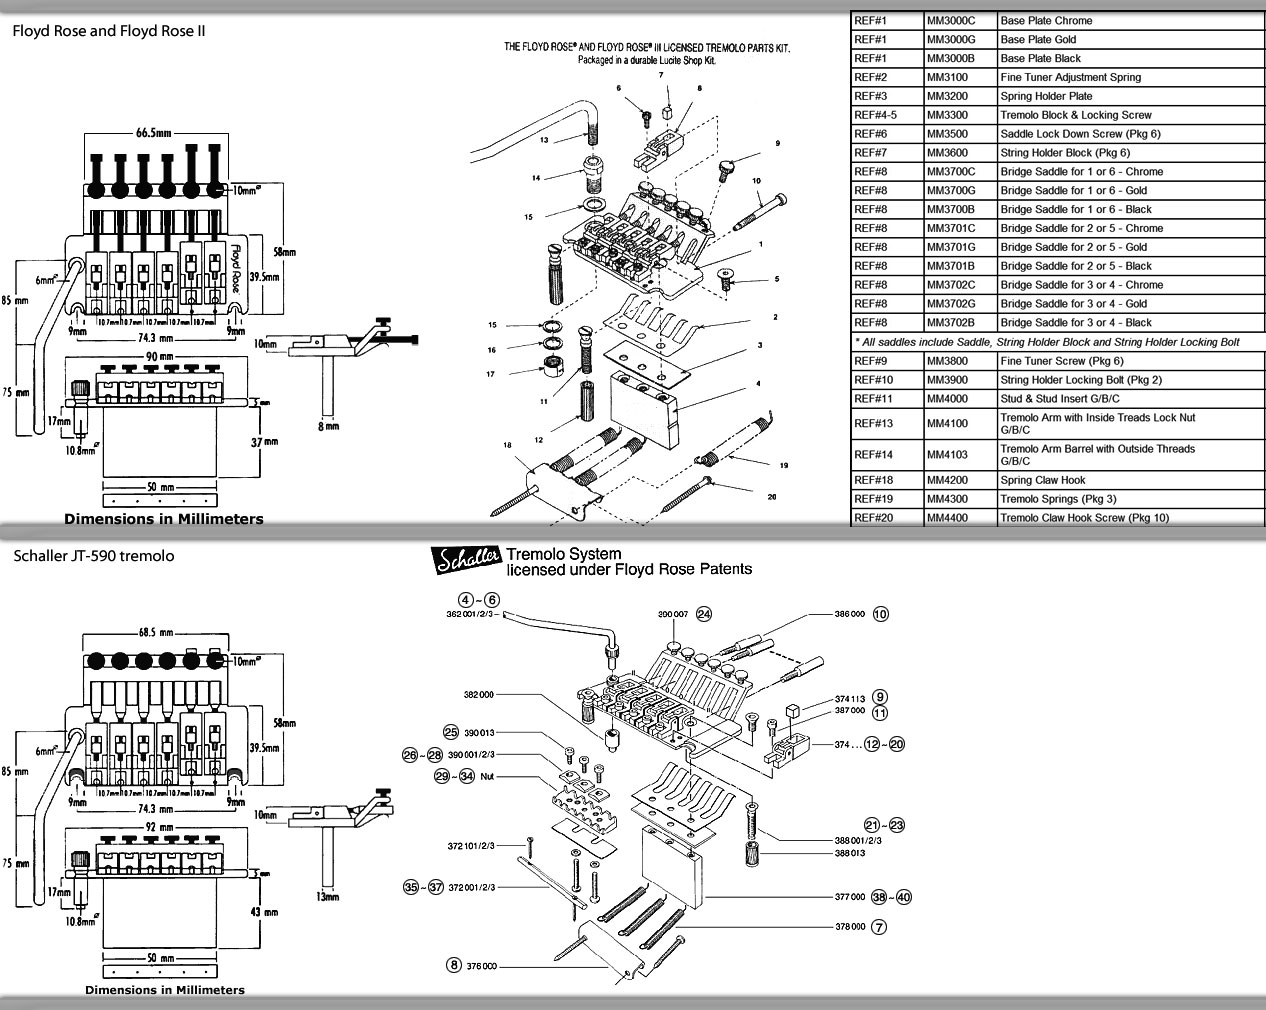 Locking Tremolo Diagram And Parts List Gear Vault